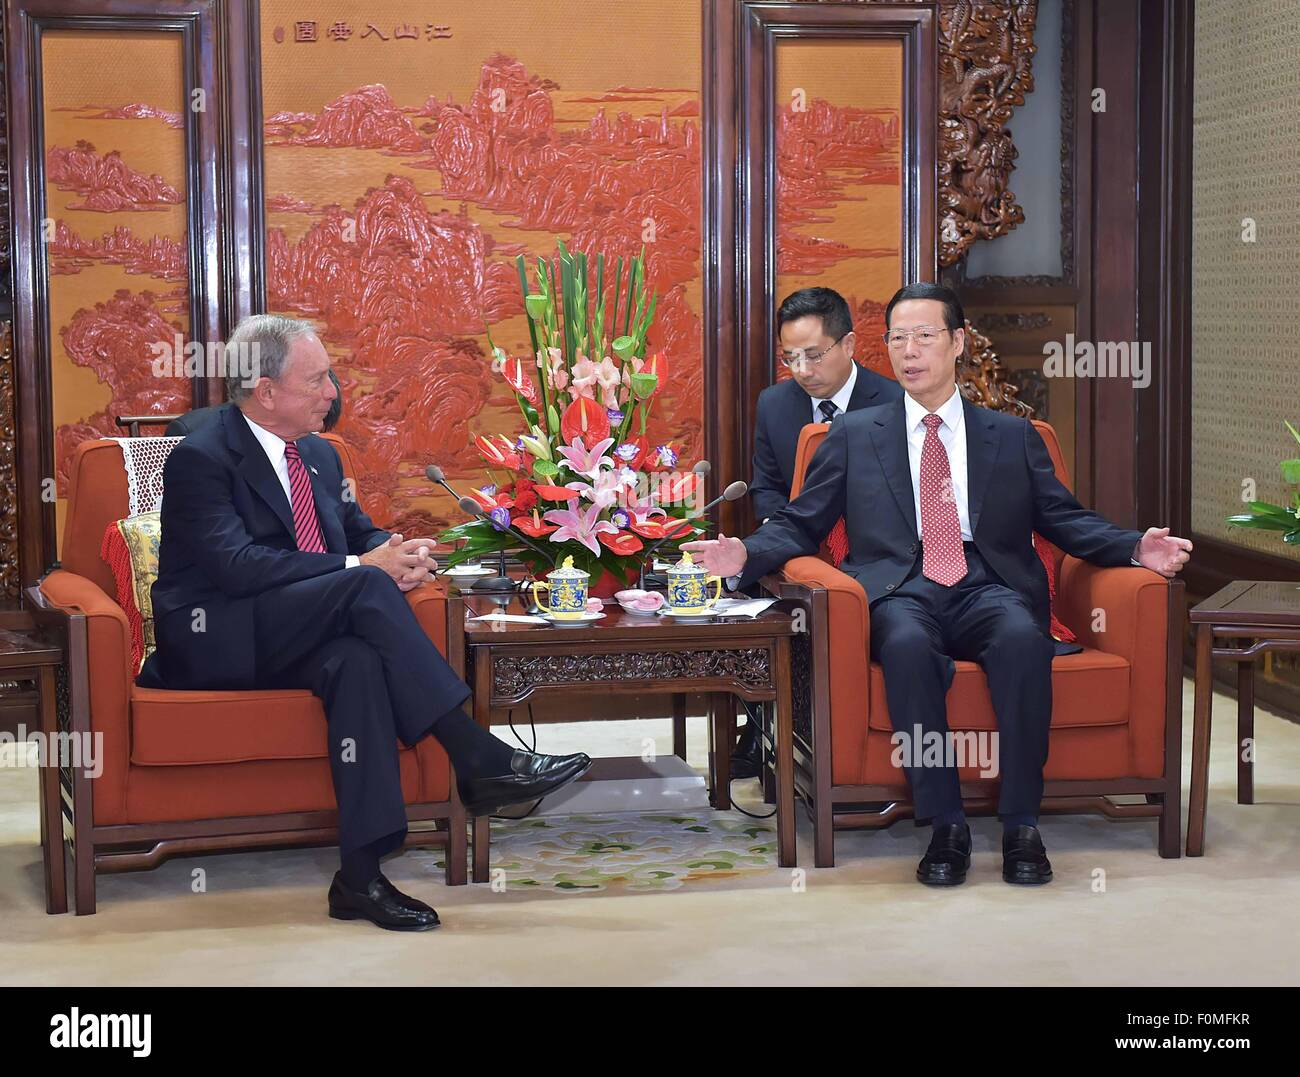 (150818) -- BEIJING, Aug. 18, 2015 (Xinhua) -- Chinese Vice Premier Zhang Gaoli (R, front) meets with founder of - Stock Image